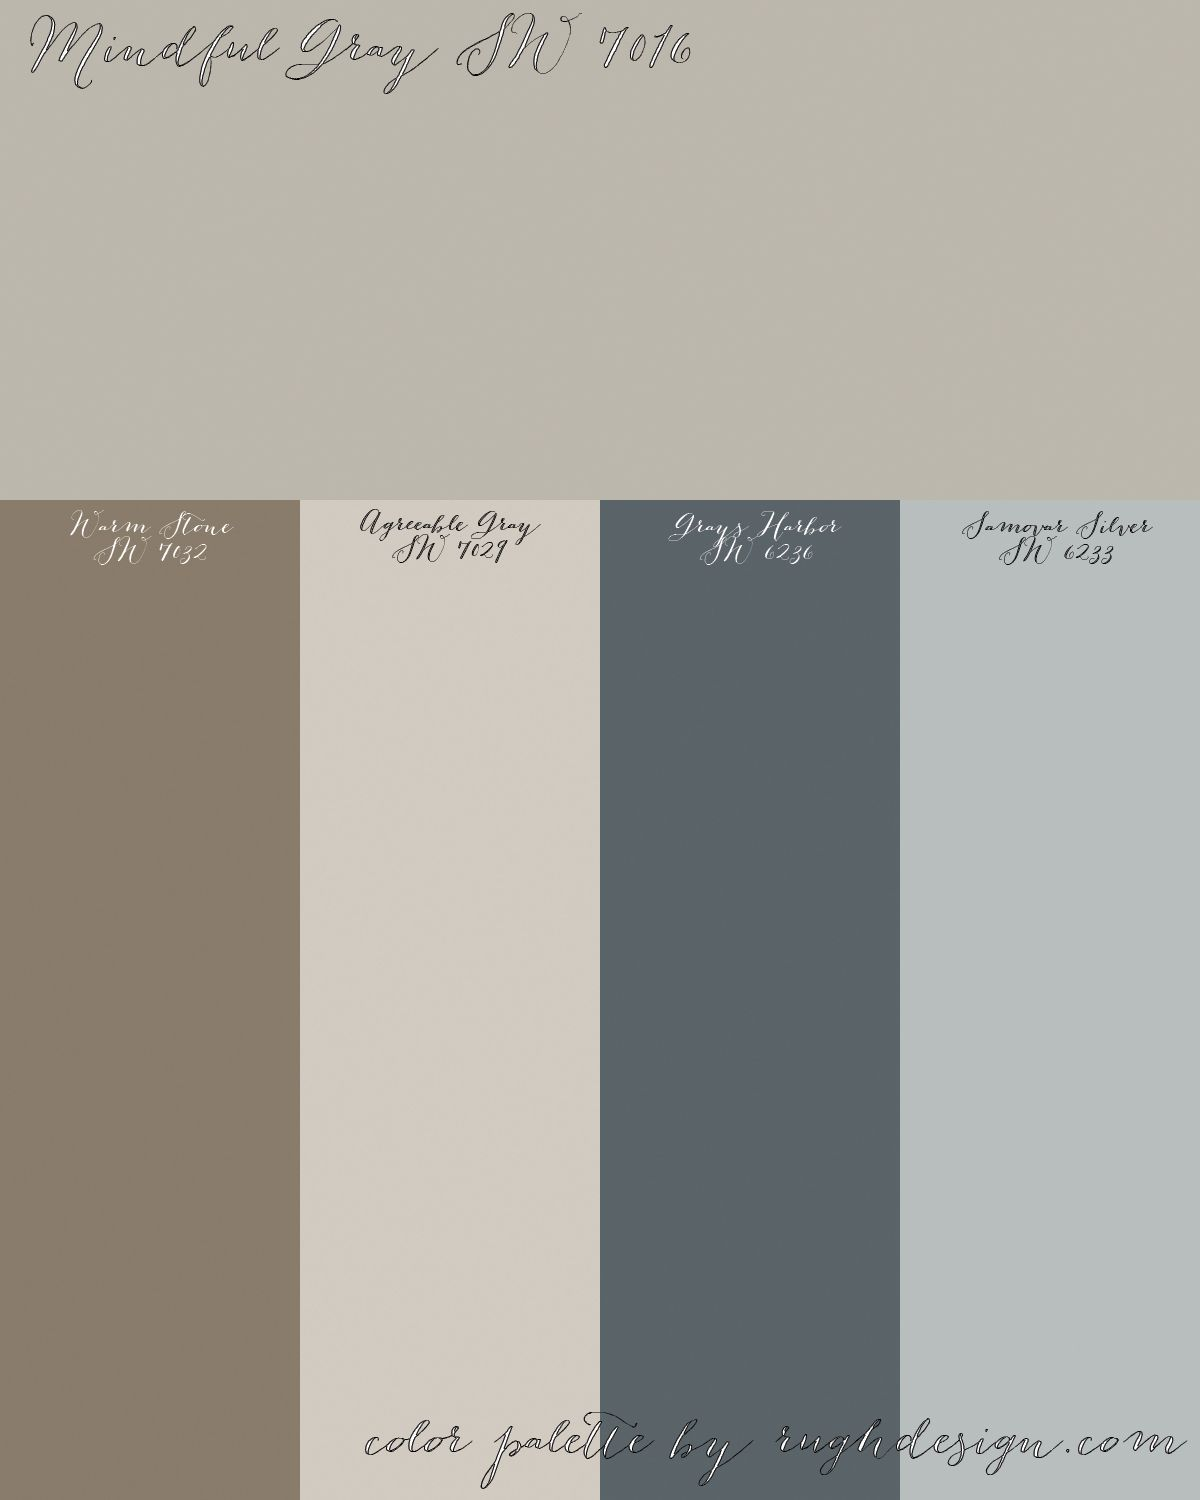 mindful gray sw 7016 with a complementary color scheme home sweet home. Black Bedroom Furniture Sets. Home Design Ideas